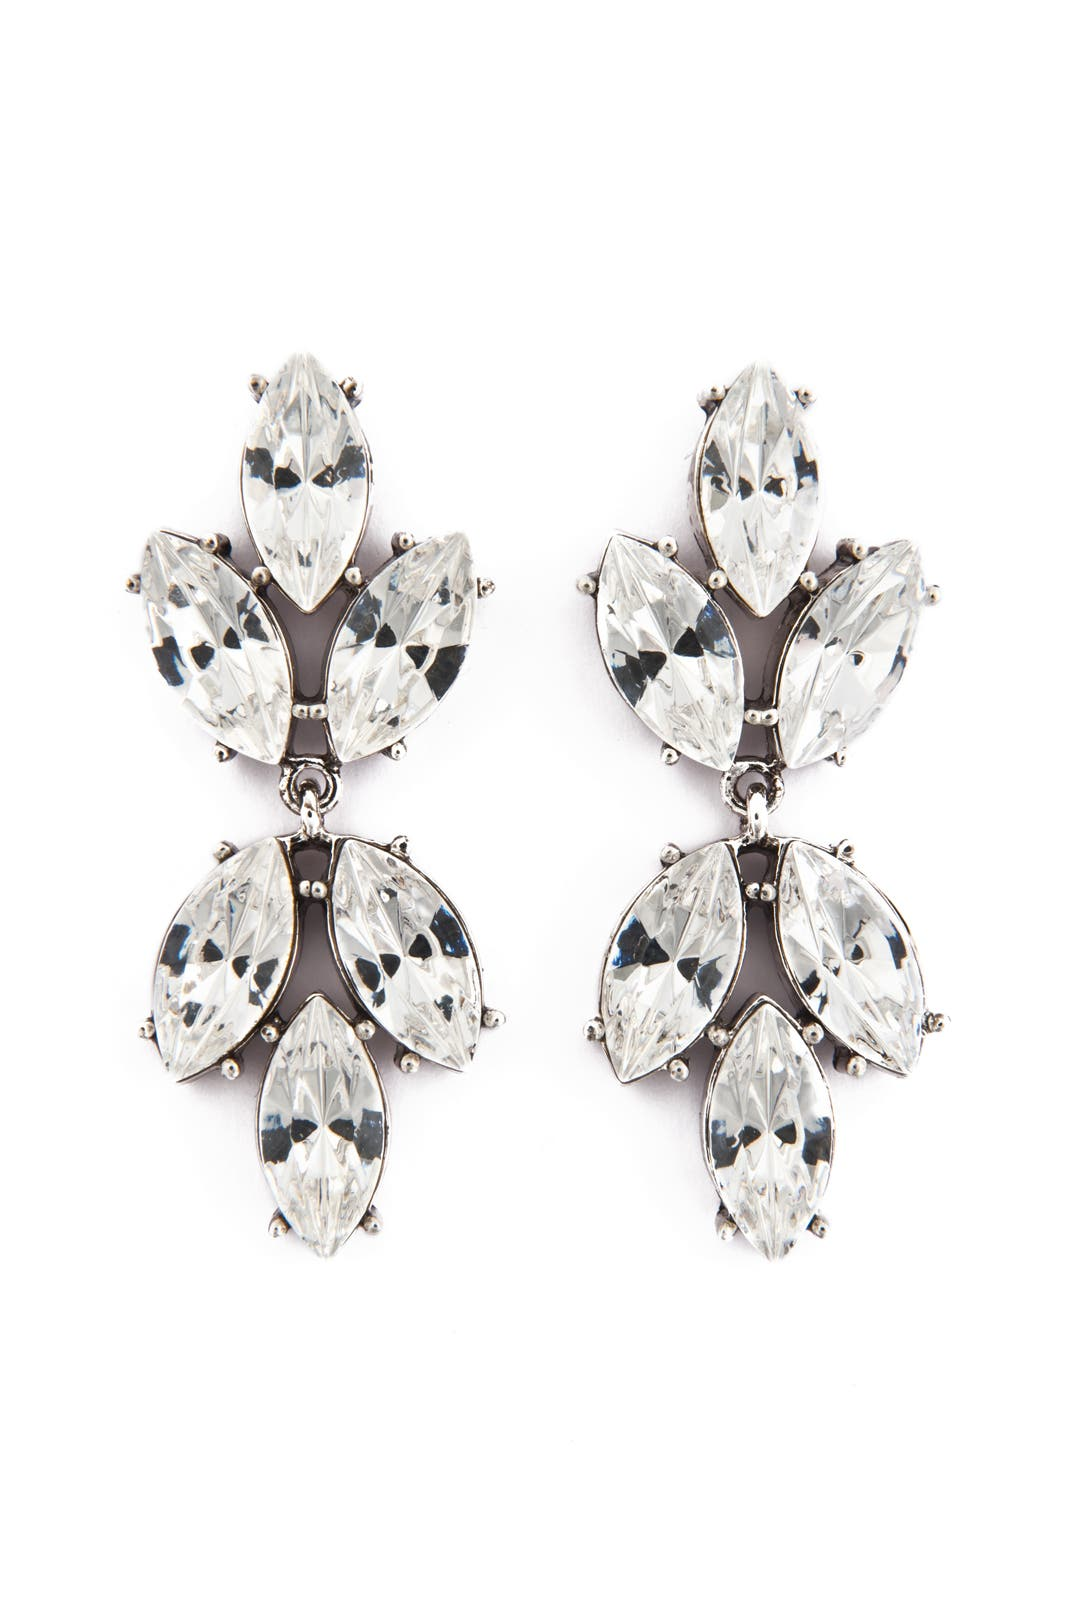 Falling Leaf Earrings by Badgley Mischka Jewelry